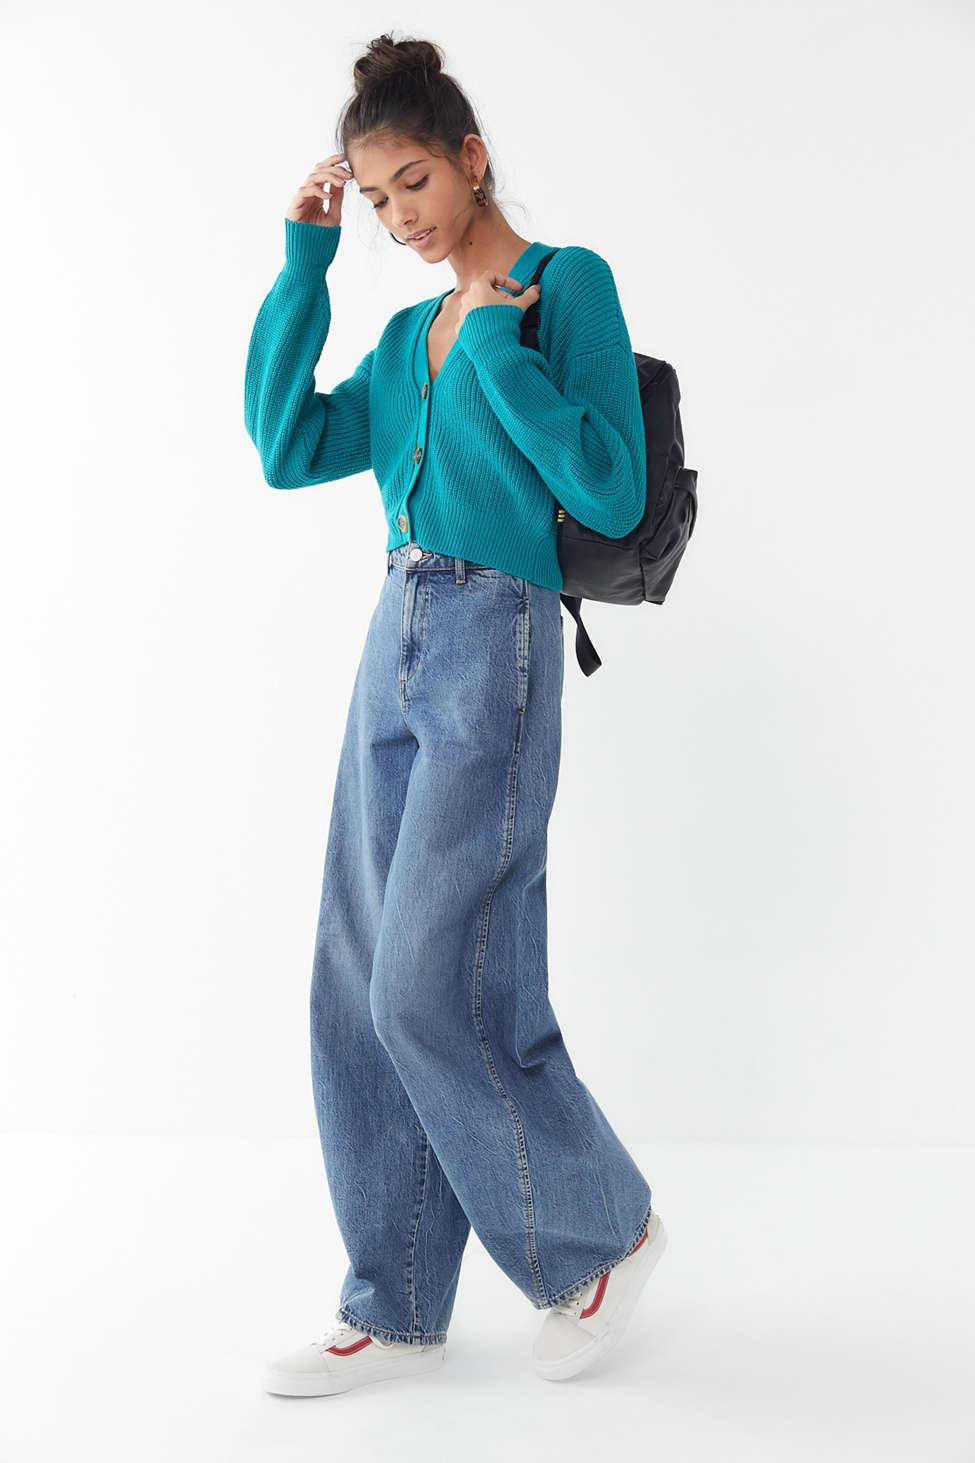 7090b6f5ef798 Lyst - Urban Outfitters Uo Kai Cropped Cardigan in Blue - Save 51%